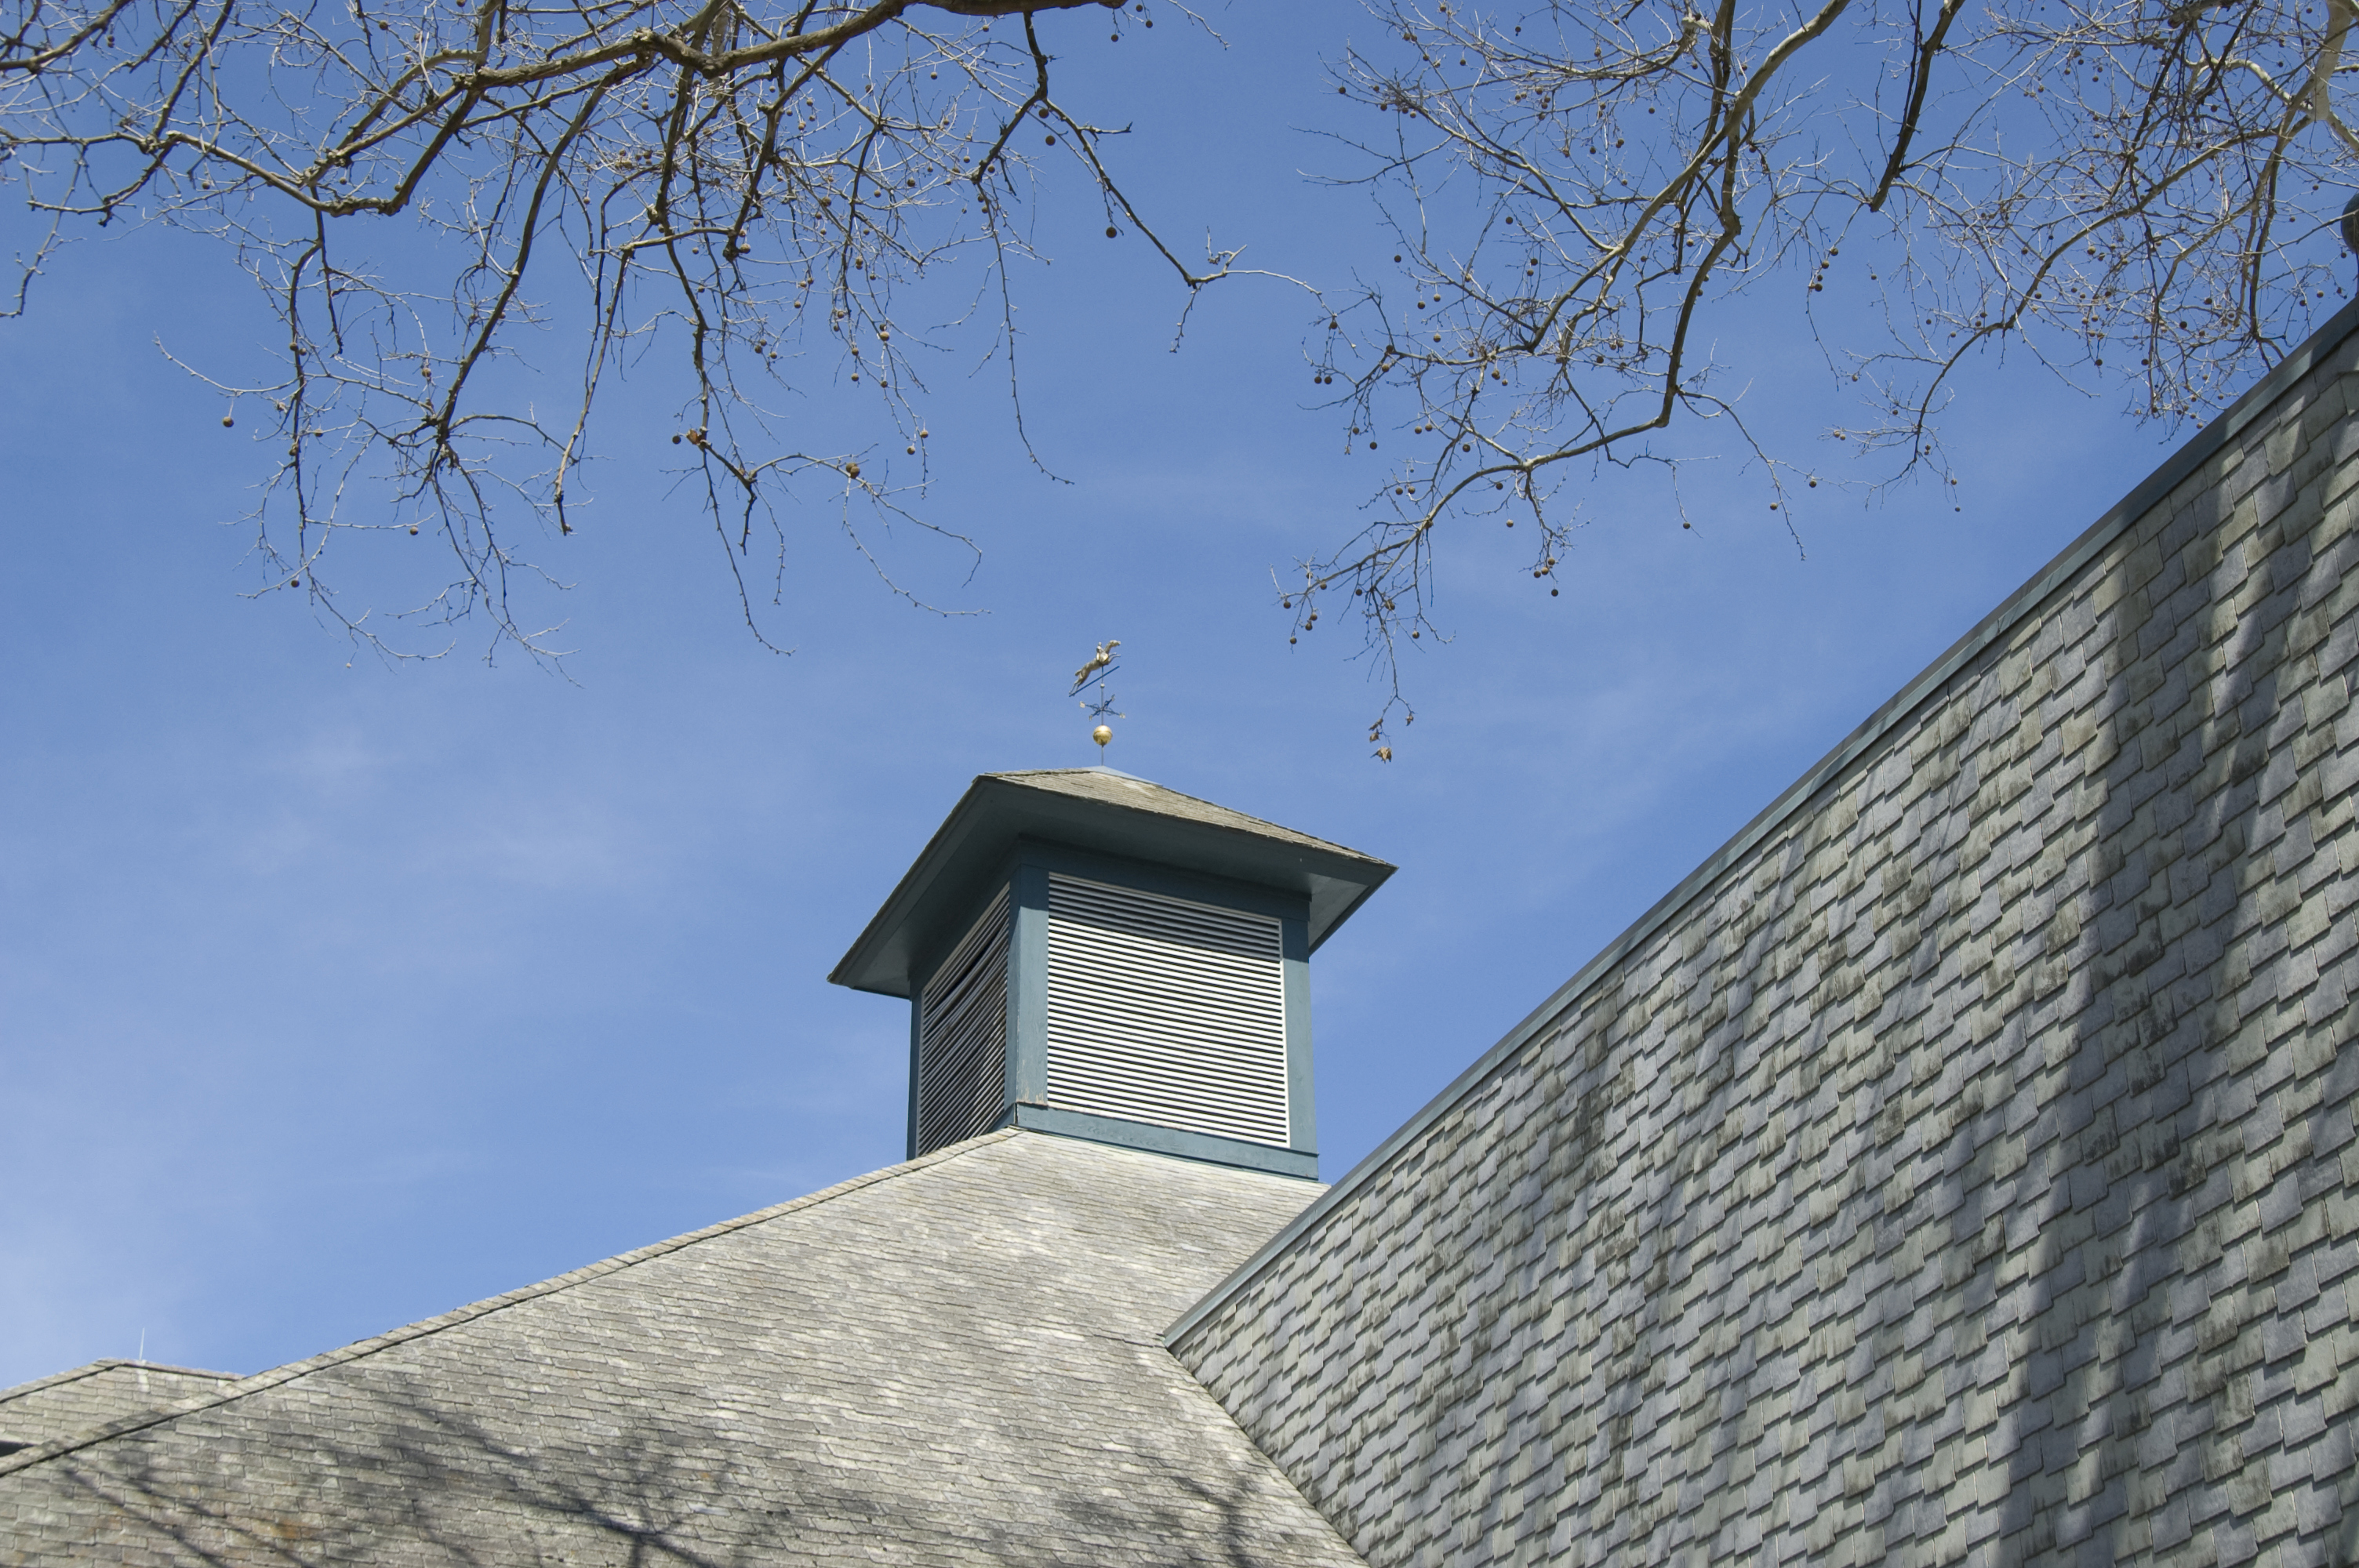 Cupola with Weathervane